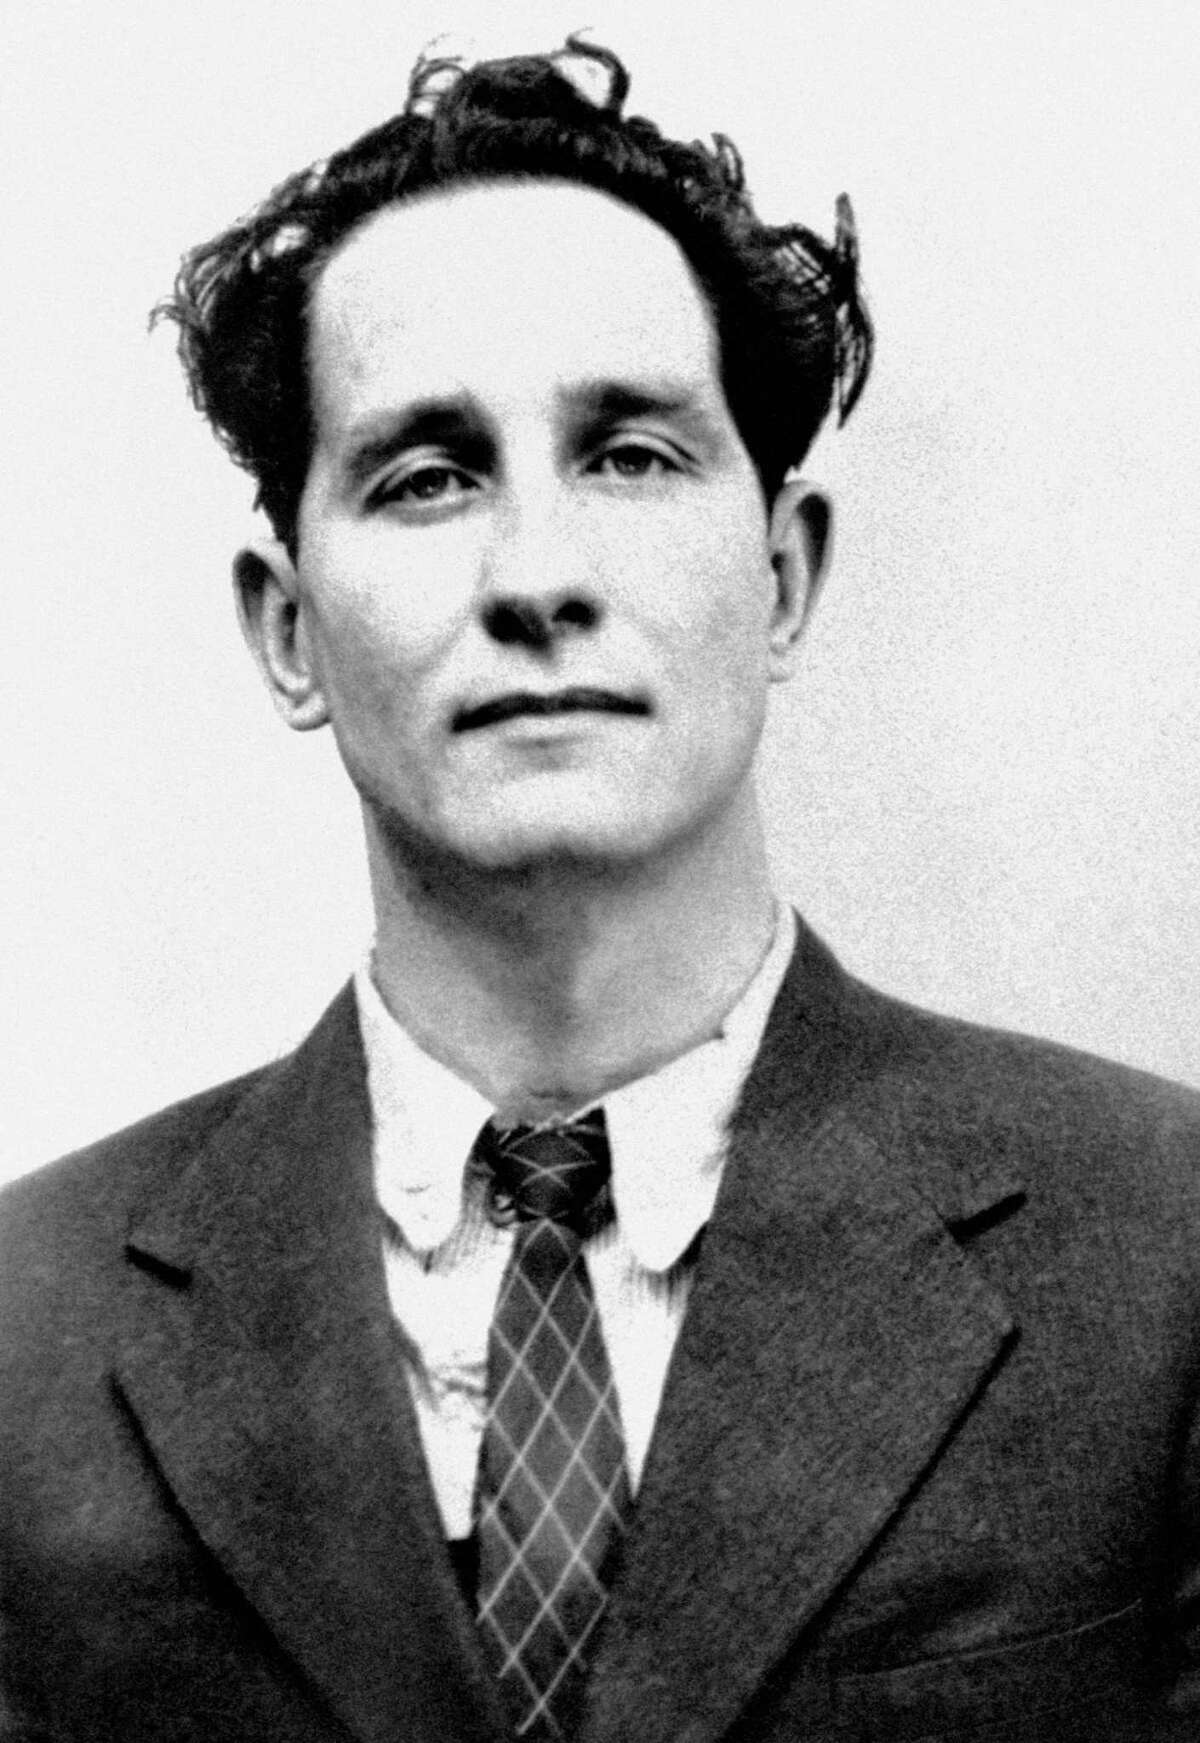 Ronnie Biggs, known for his role in the 1963 Great Train Robbery, died Wednesday, Dec. 18, 2013, his daughter-in-law said. He was 84. Photo is of Biggs in July 8, 1963 (AP Photo/PA, File)